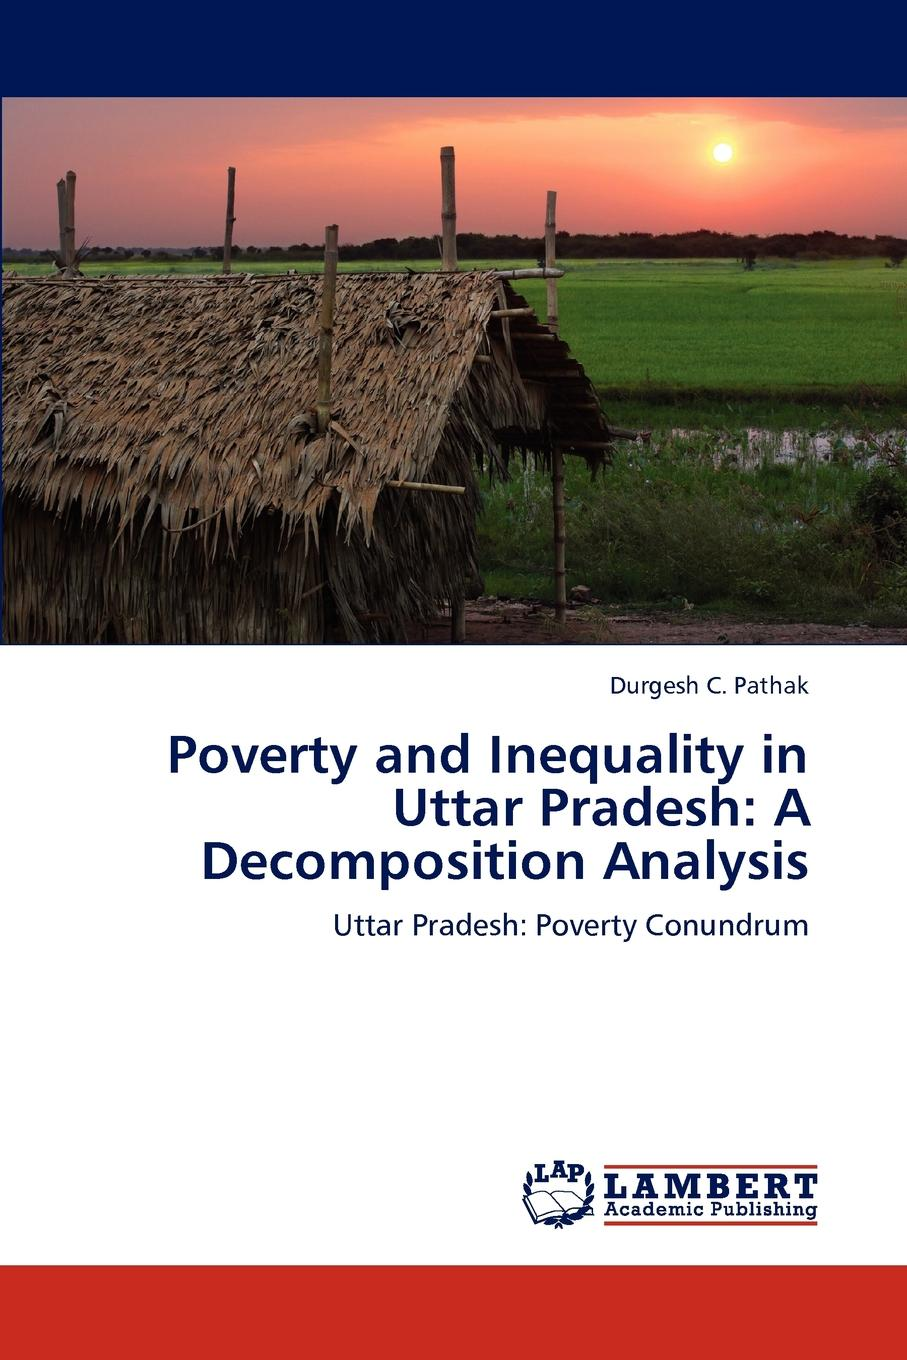 купить Durgesh C. Pathak Poverty and Inequality in Uttar Pradesh. A Decomposition Analysis по цене 8914 рублей